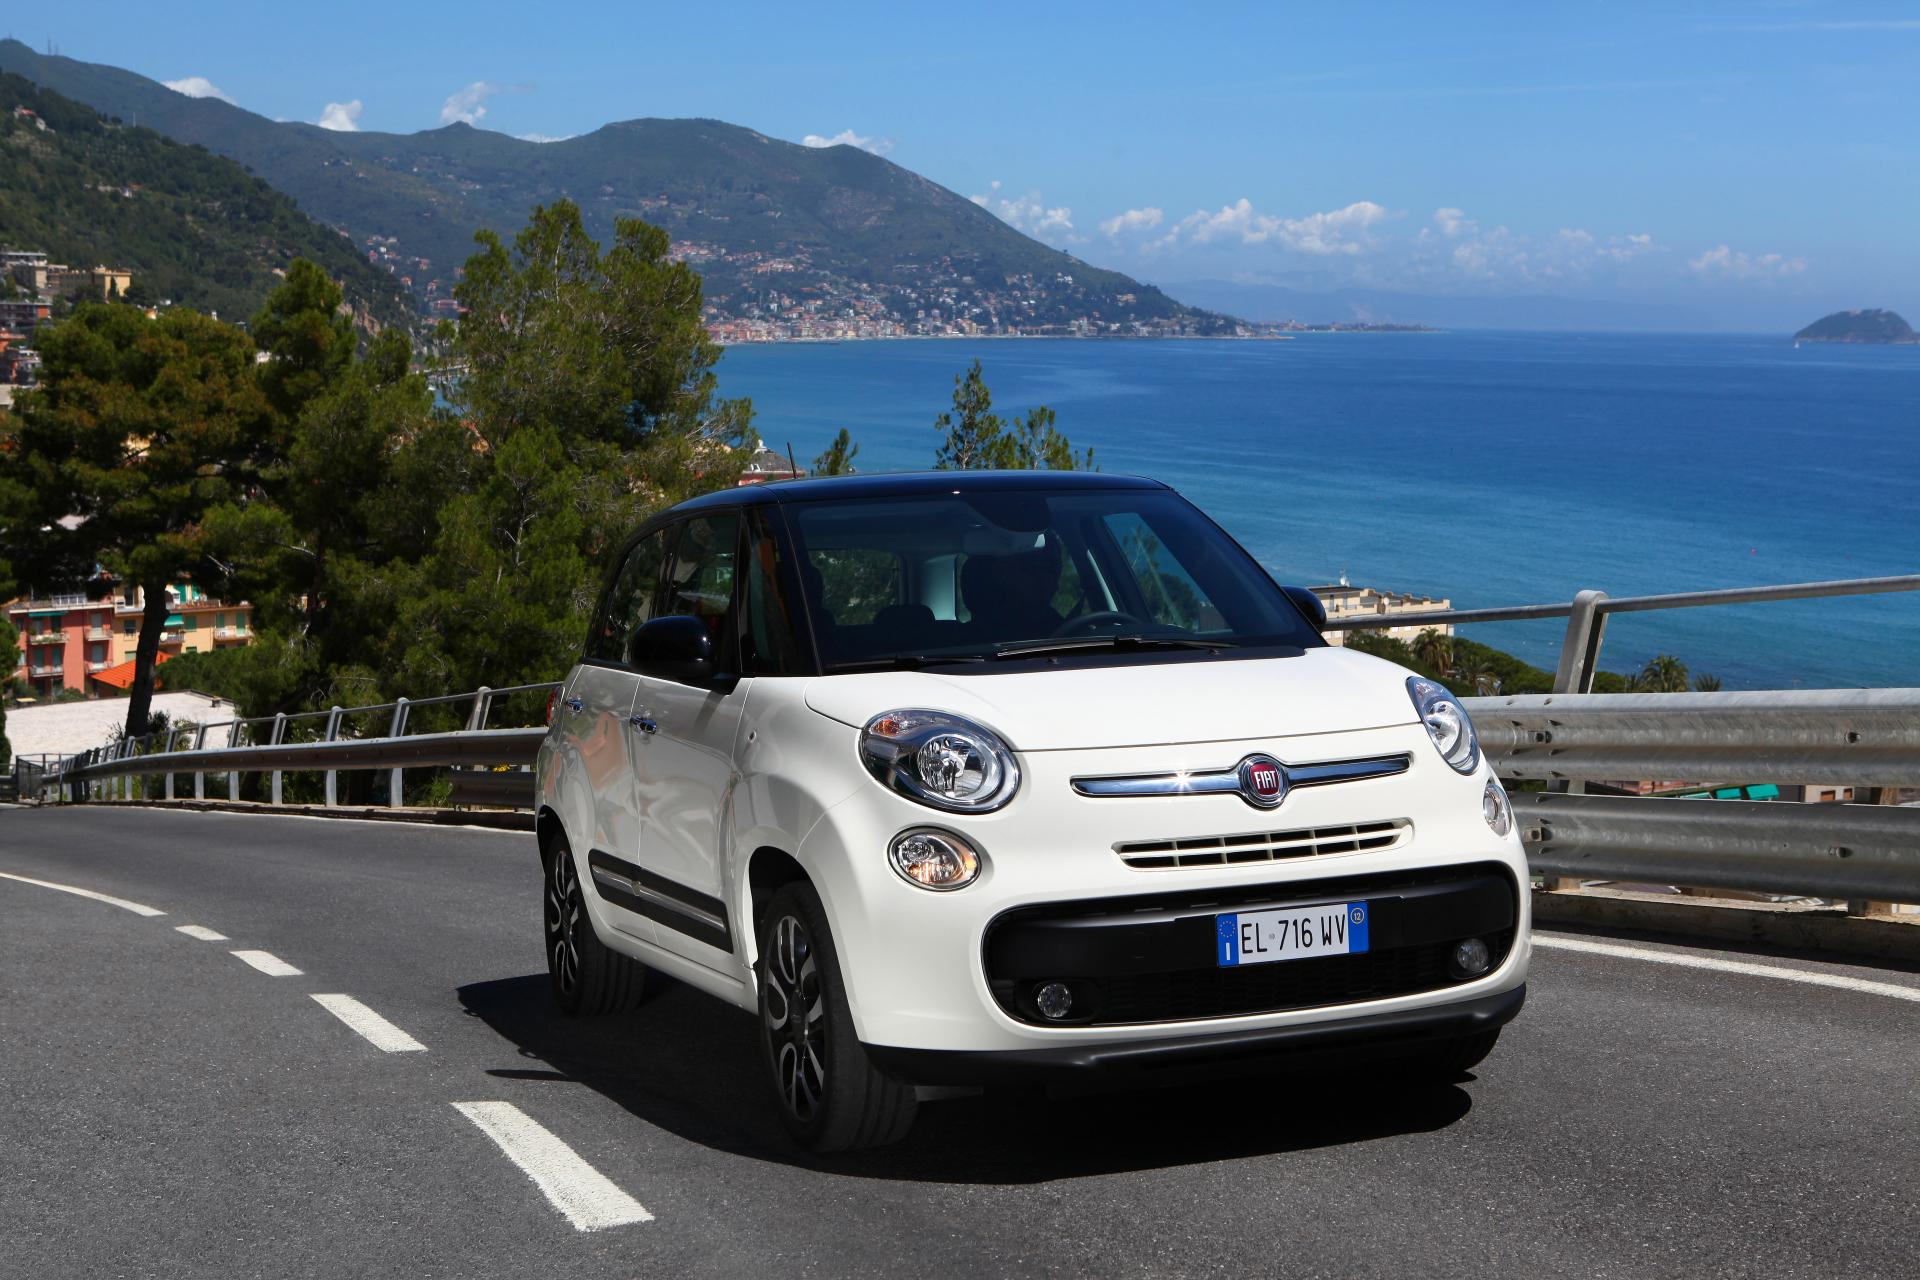 2013 Fiat 500l News And Information 1970 500 For Sale